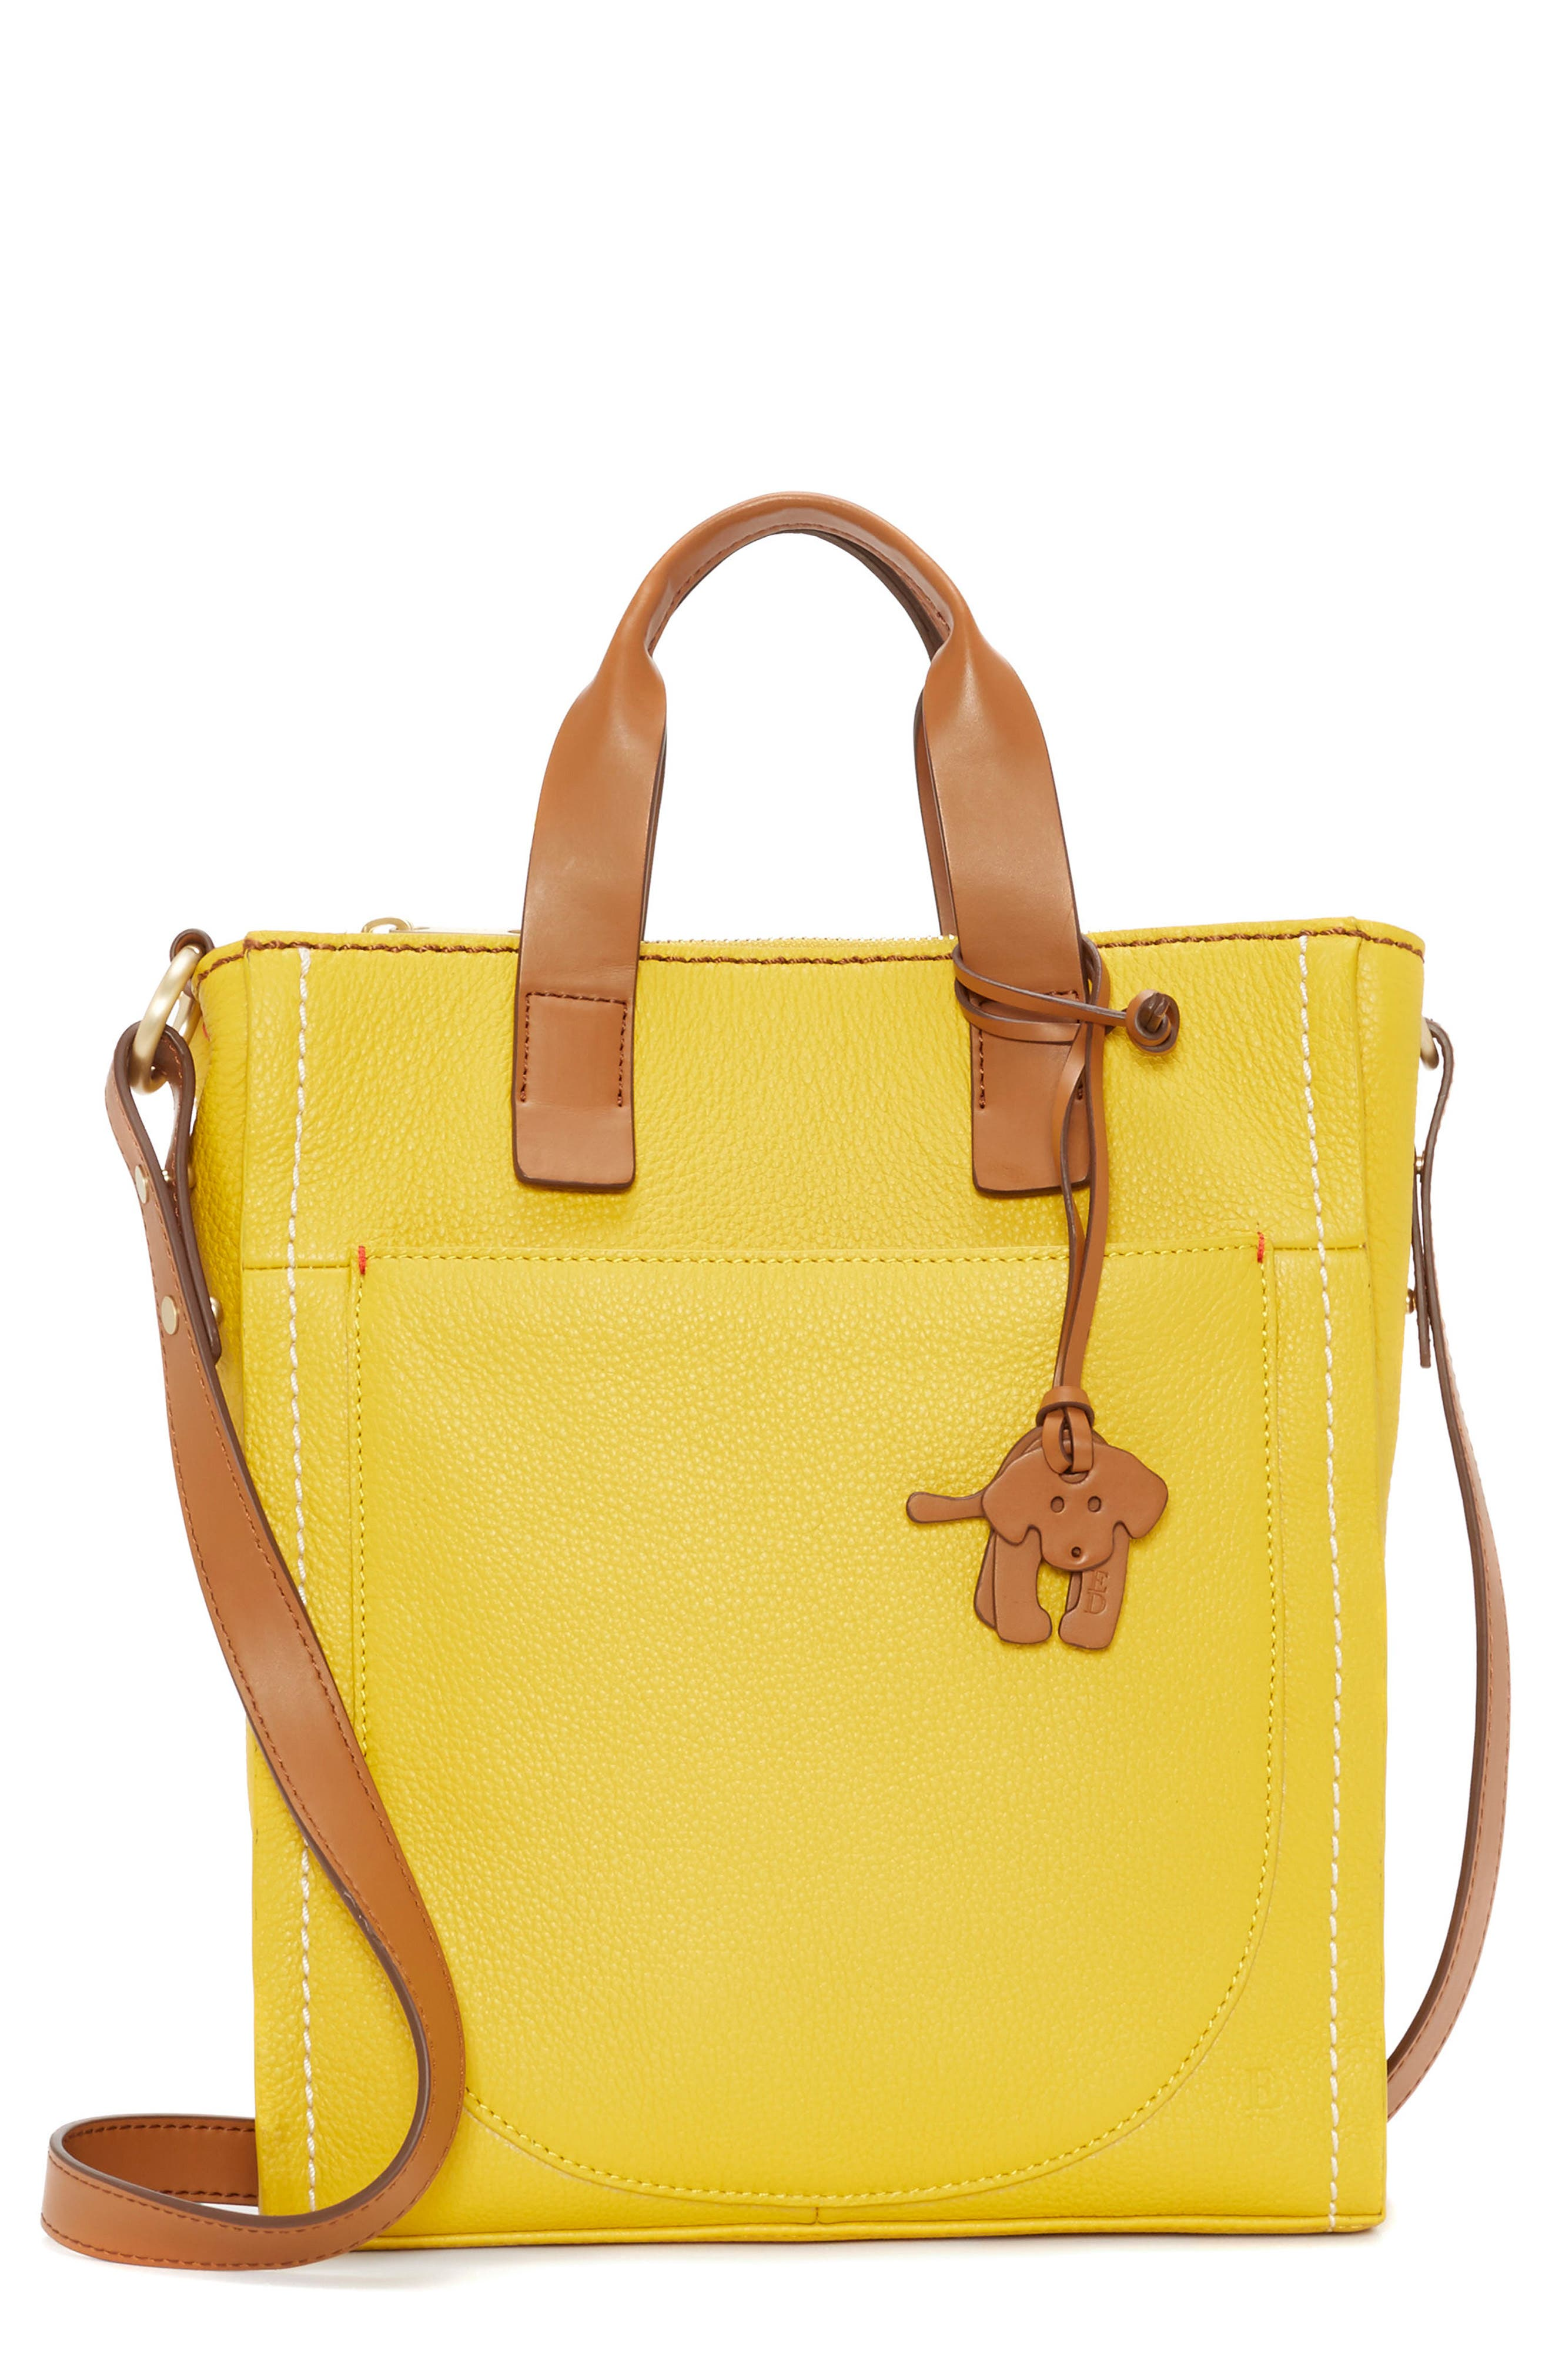 ED ELLEN DEGENERES,                             Small Baja Leather Tote,                             Main thumbnail 1, color,                             701